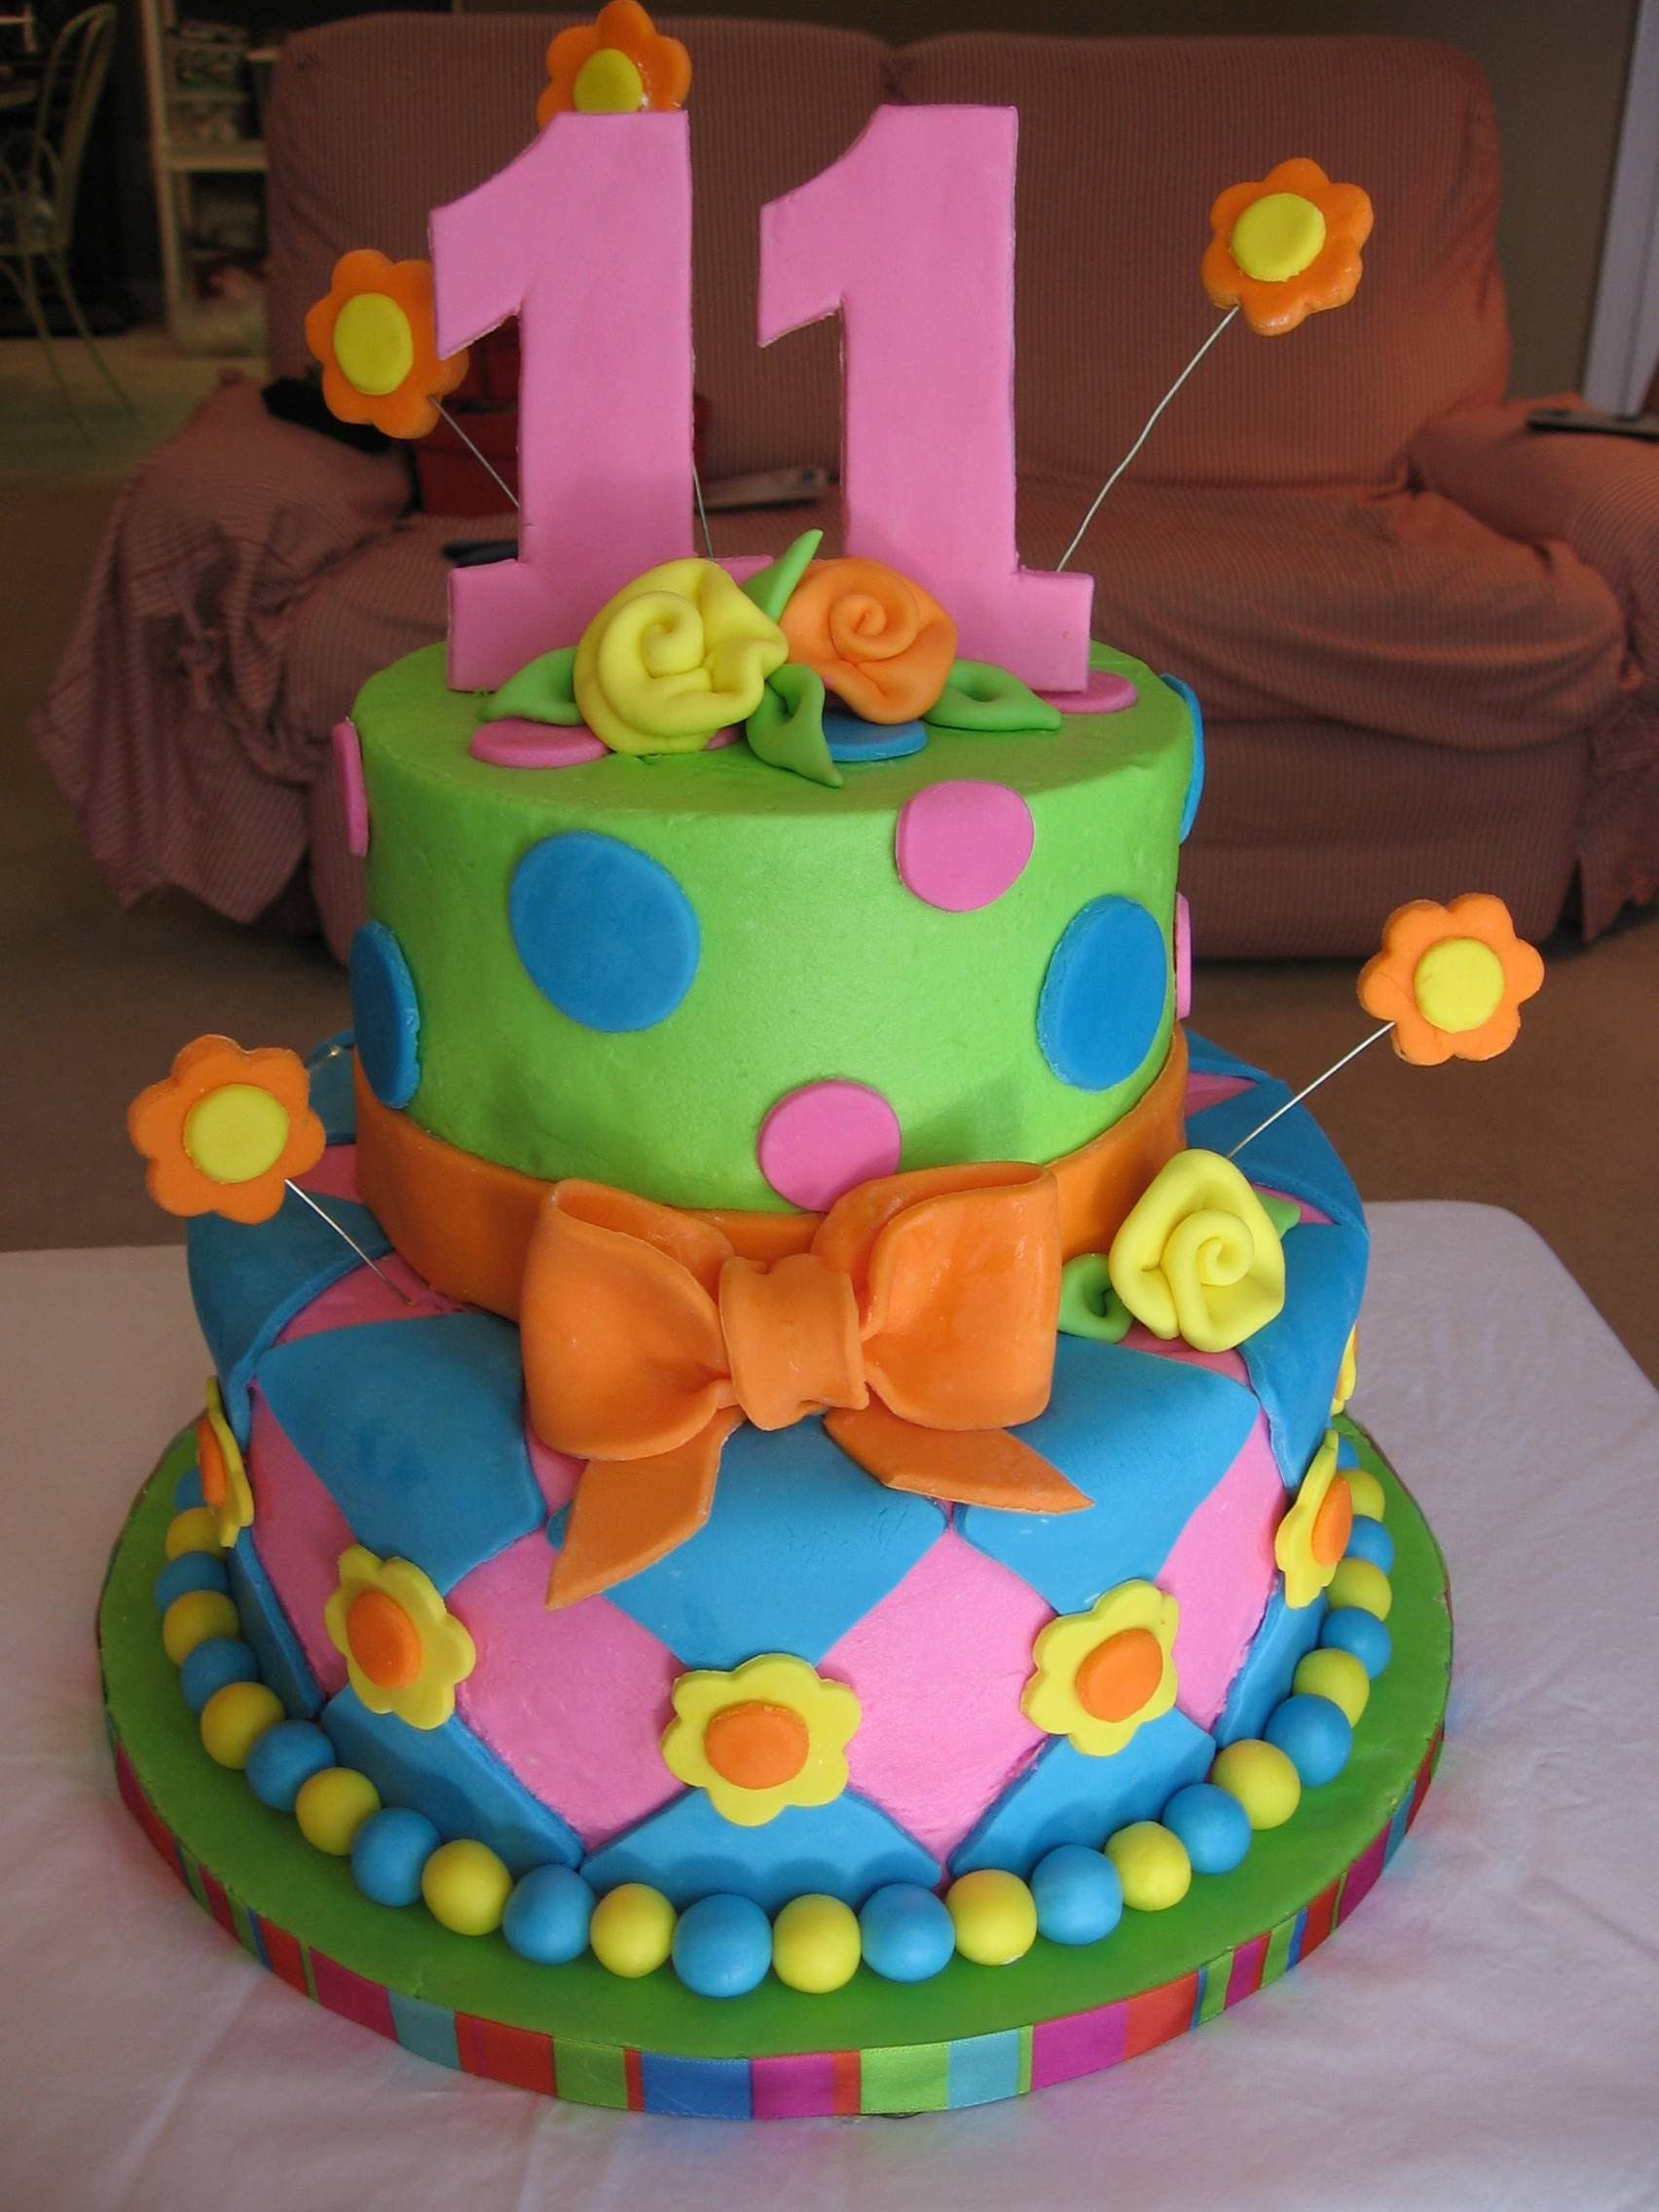 11th Birthday With Images Birthday Cake Decorating Cool